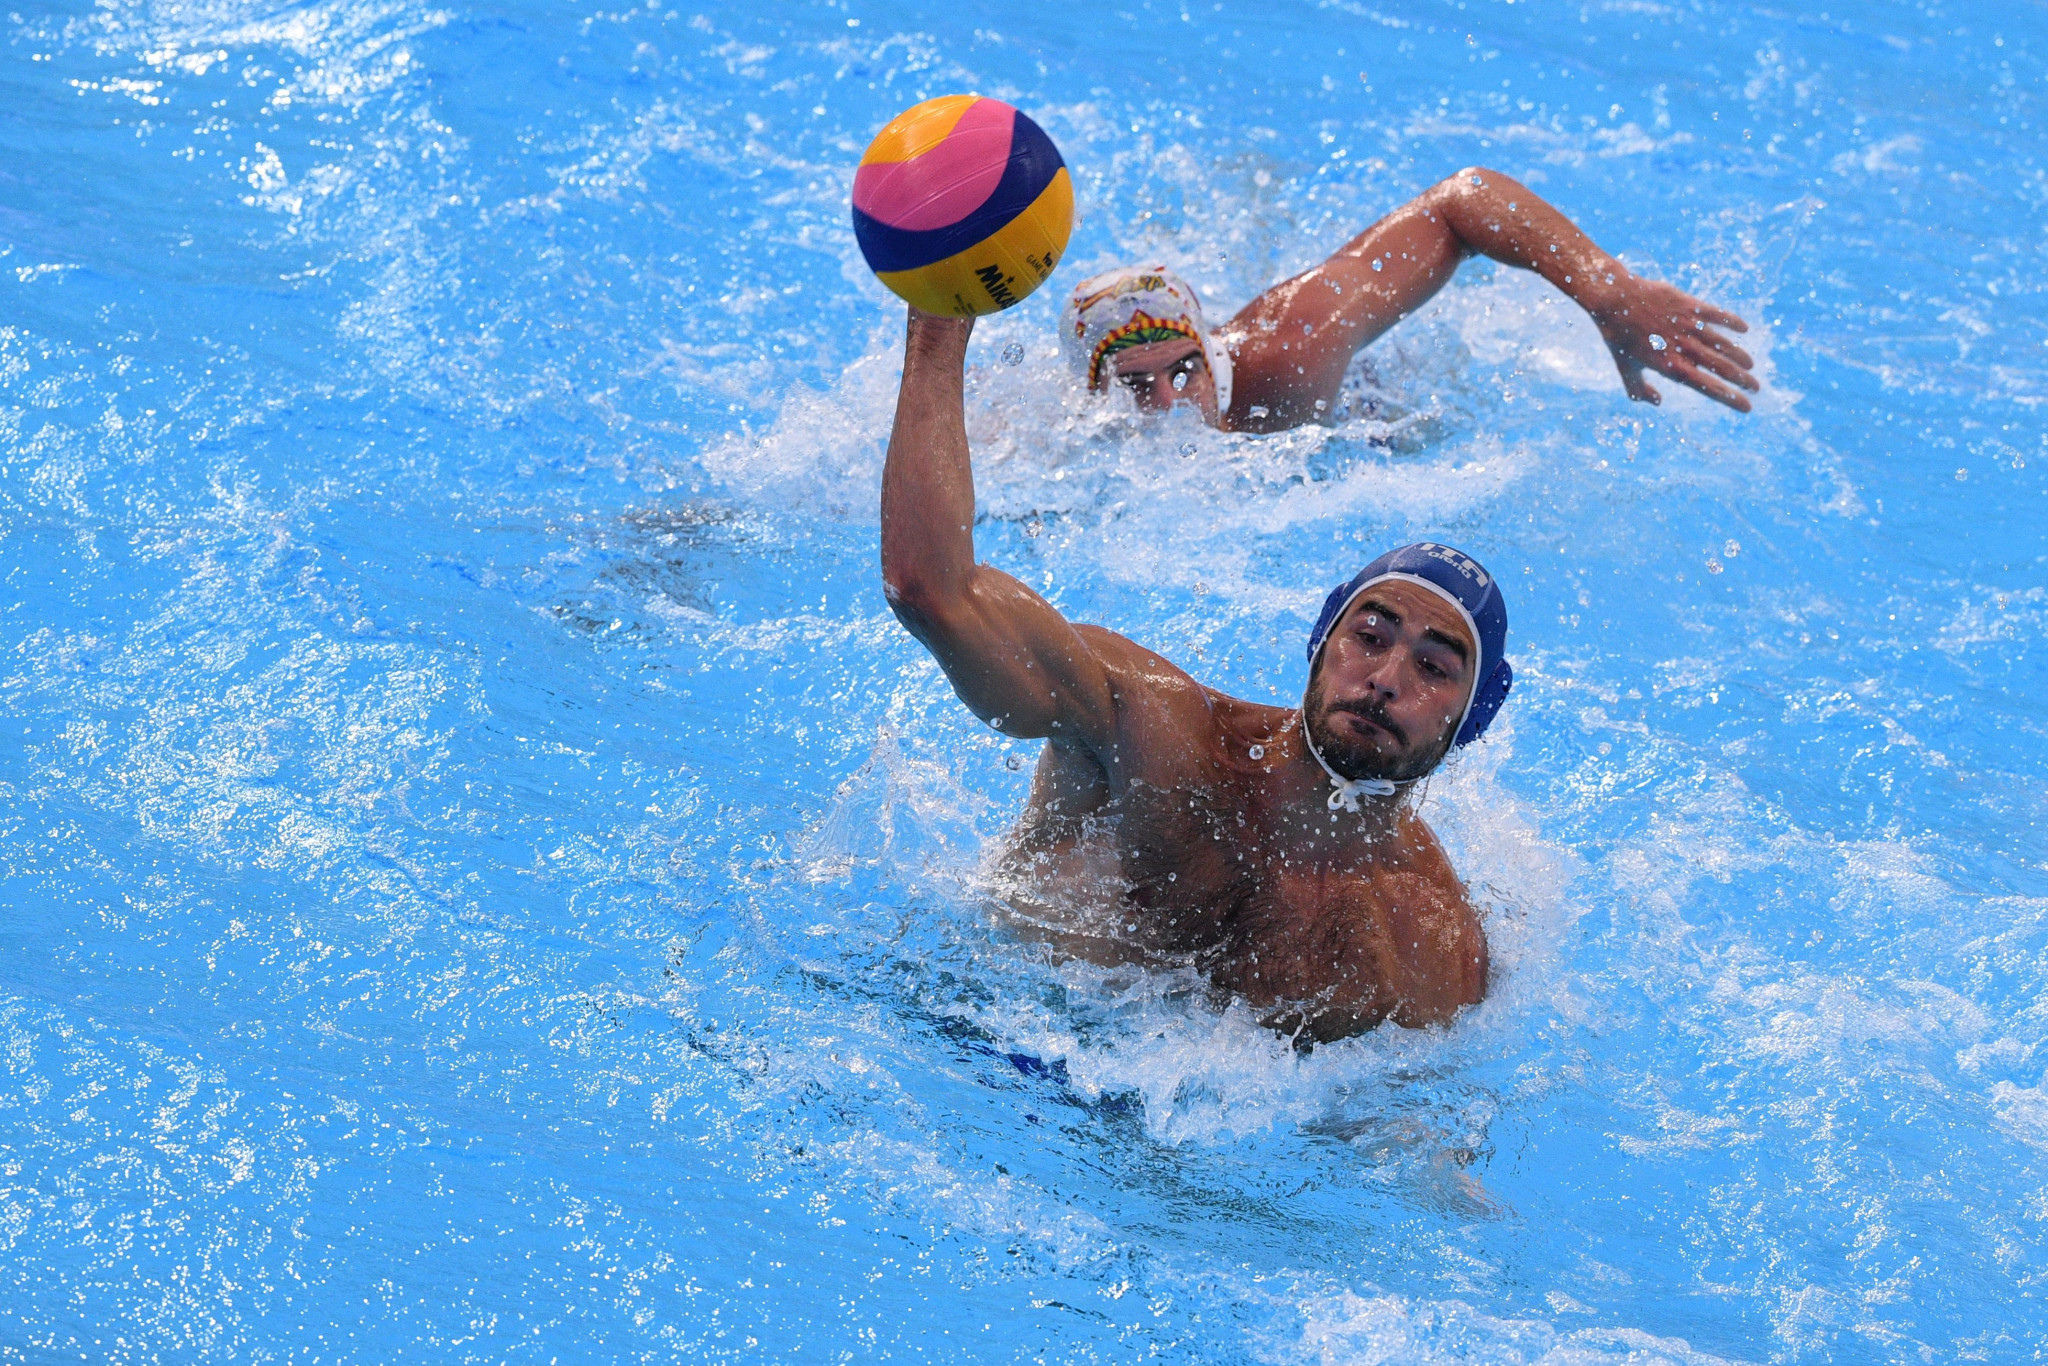 Francesco Di Fulvio scored four times in Italy's 11-8 victory over Greece ©Getty Images